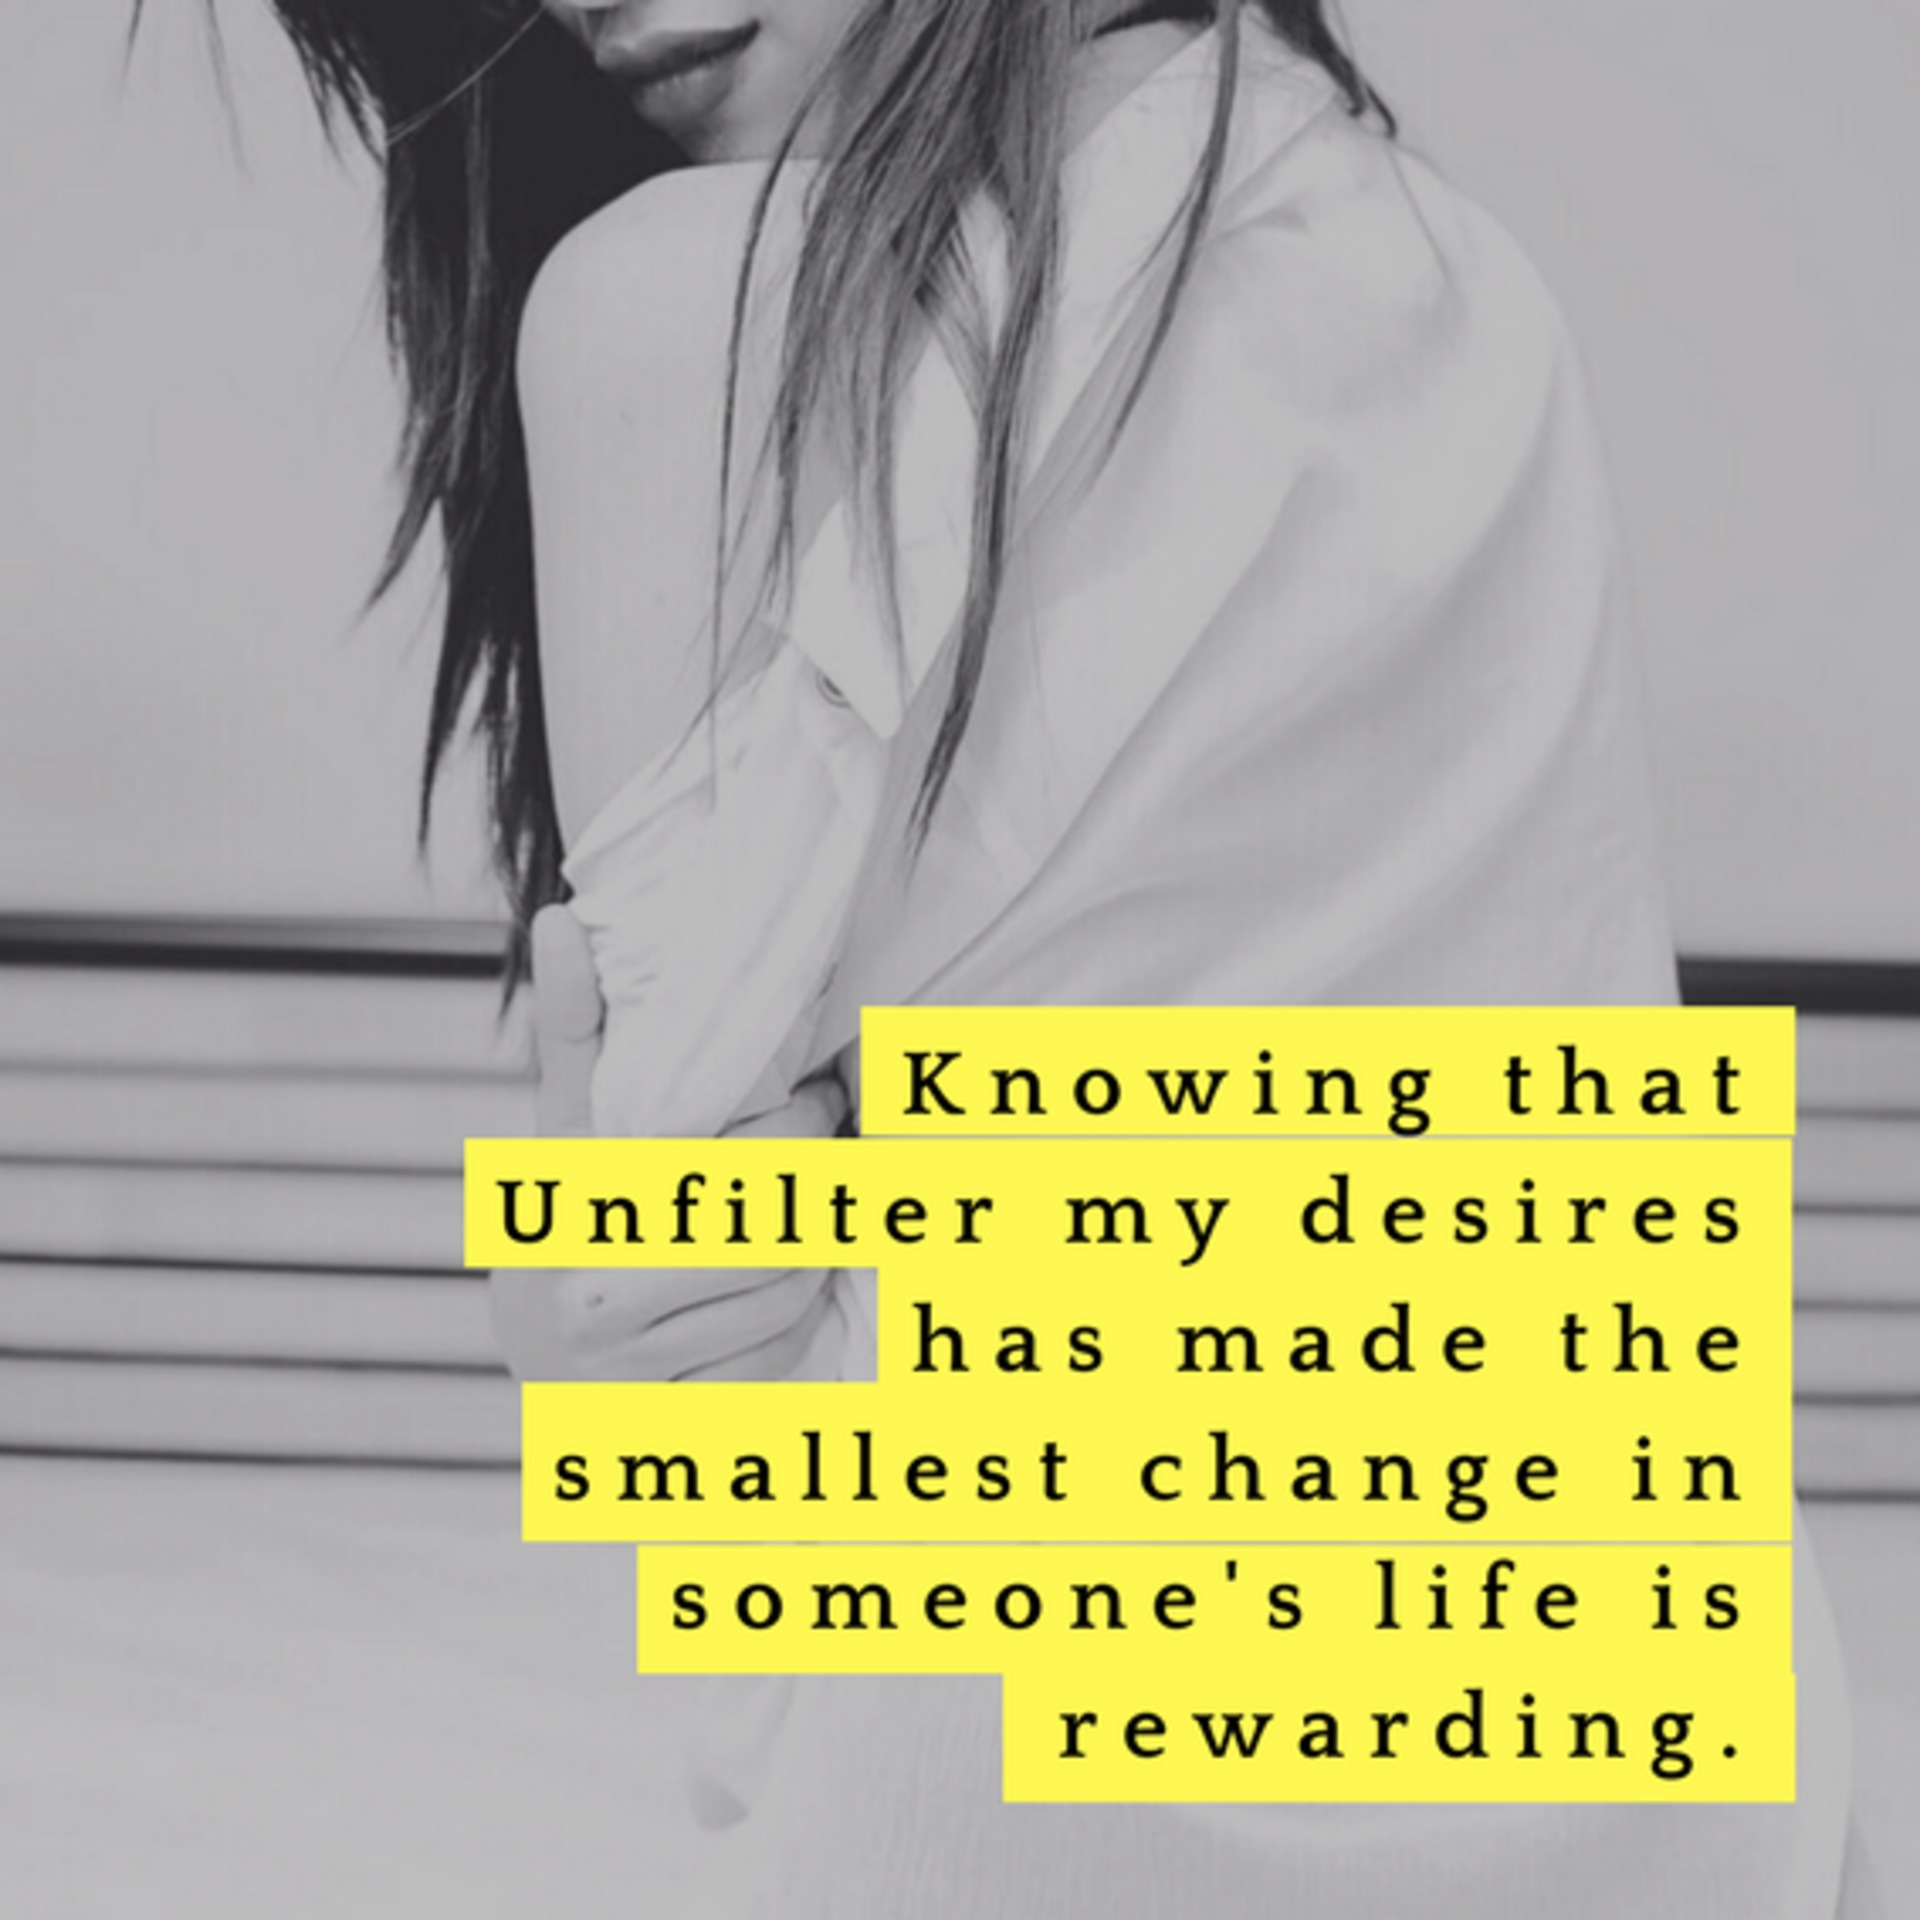 Winkl Blog - Tips & Learnings for Content Creators & Influencers - Knowing that UnfilterMyDesires has made the smallest change in someone's life is rewarding